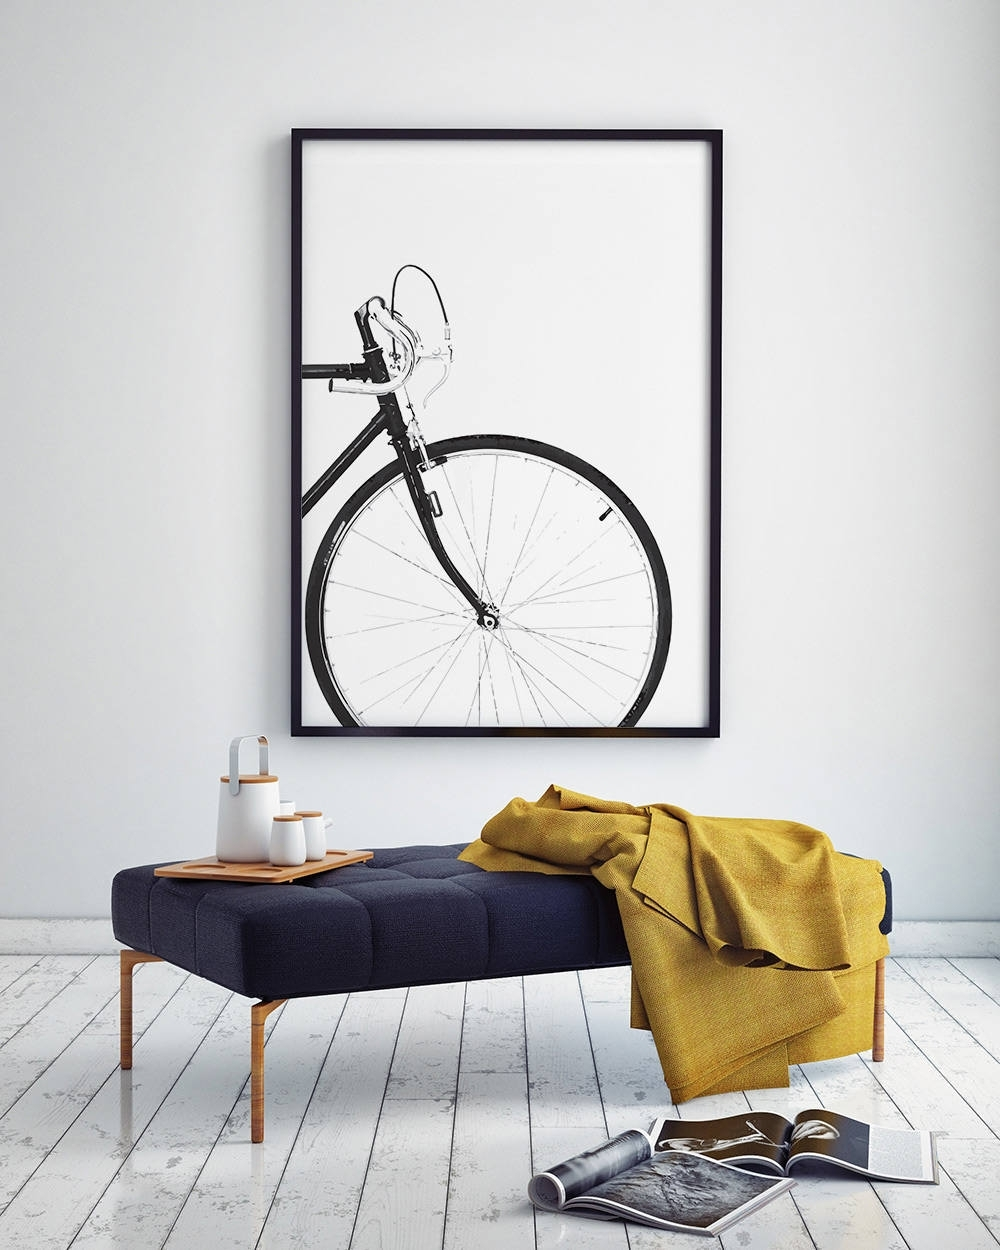 Cycling Poster, Bicycle Poster, Bike Print, Bicycle Wall Art Pertaining To Current Cycling Wall Art (View 1 of 15)